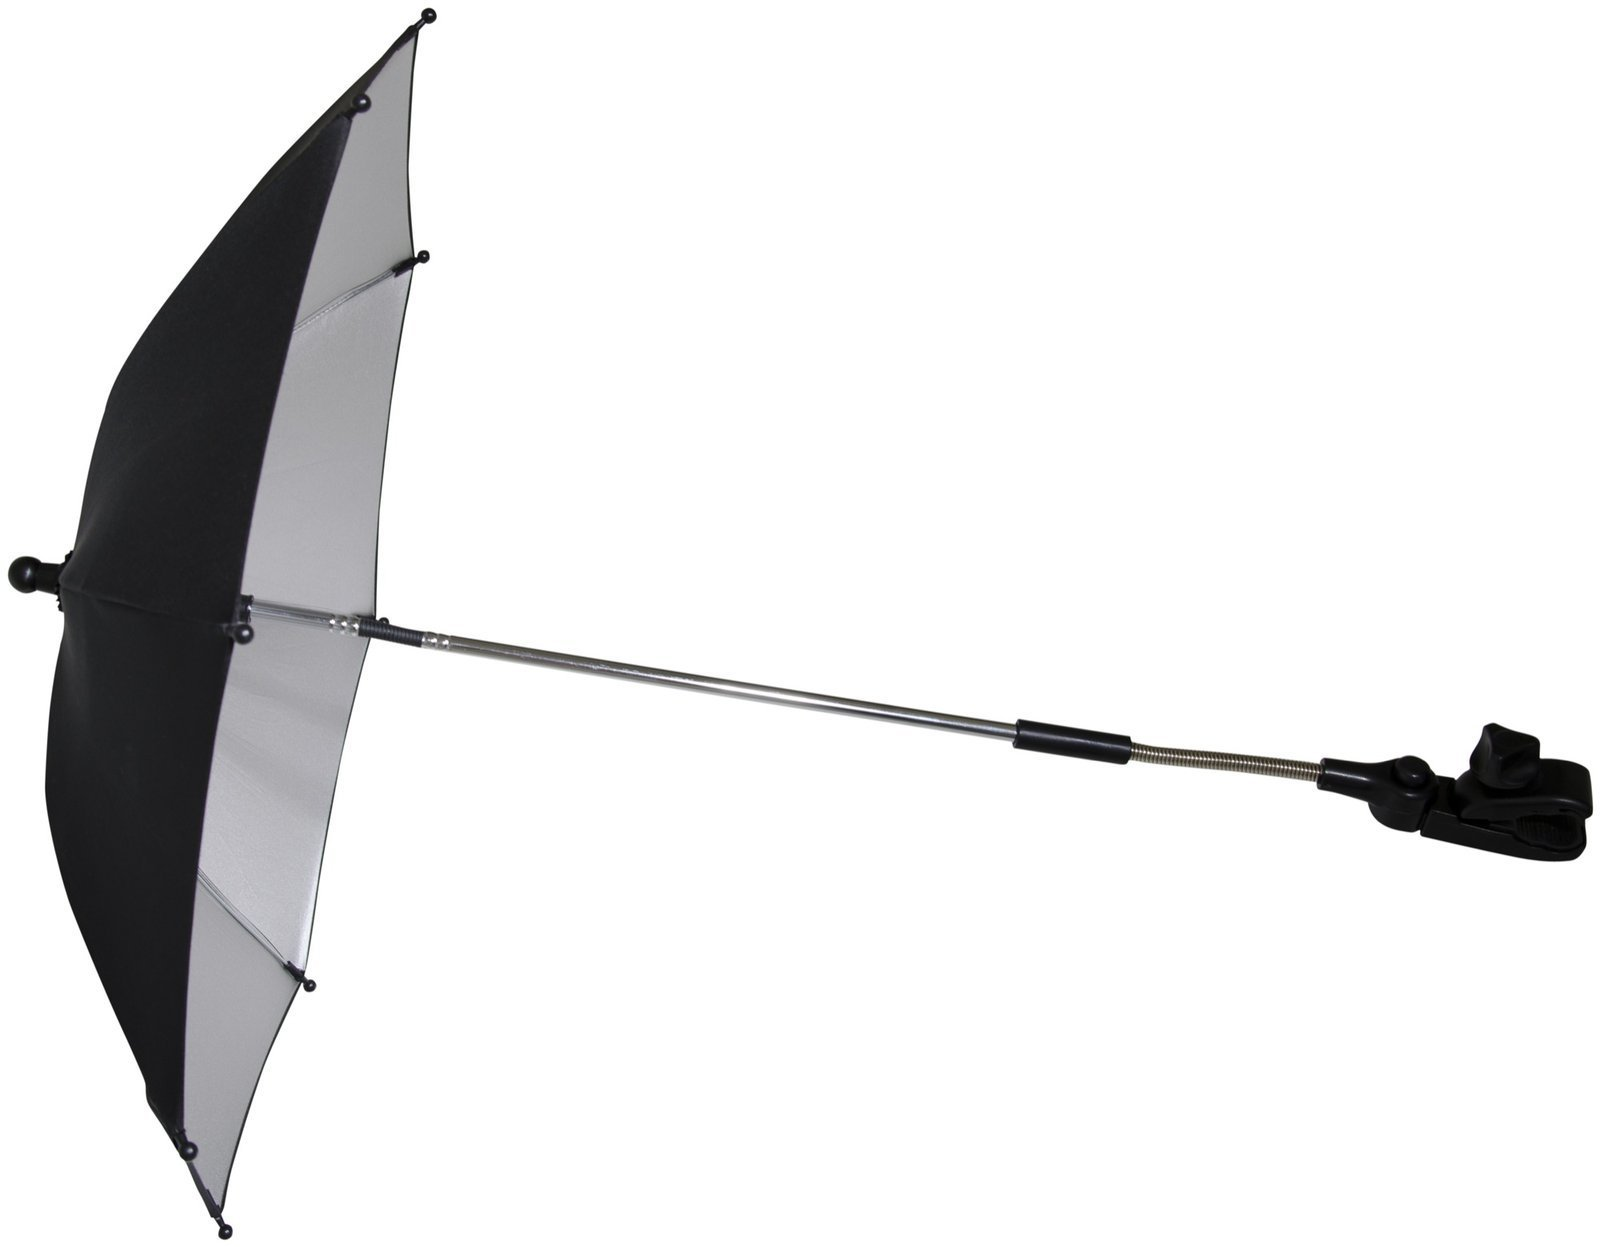 Mountain Buggy Parasol Umbrella for Strollers, Car Seats, High Chairs and More, Black by mountain buggy